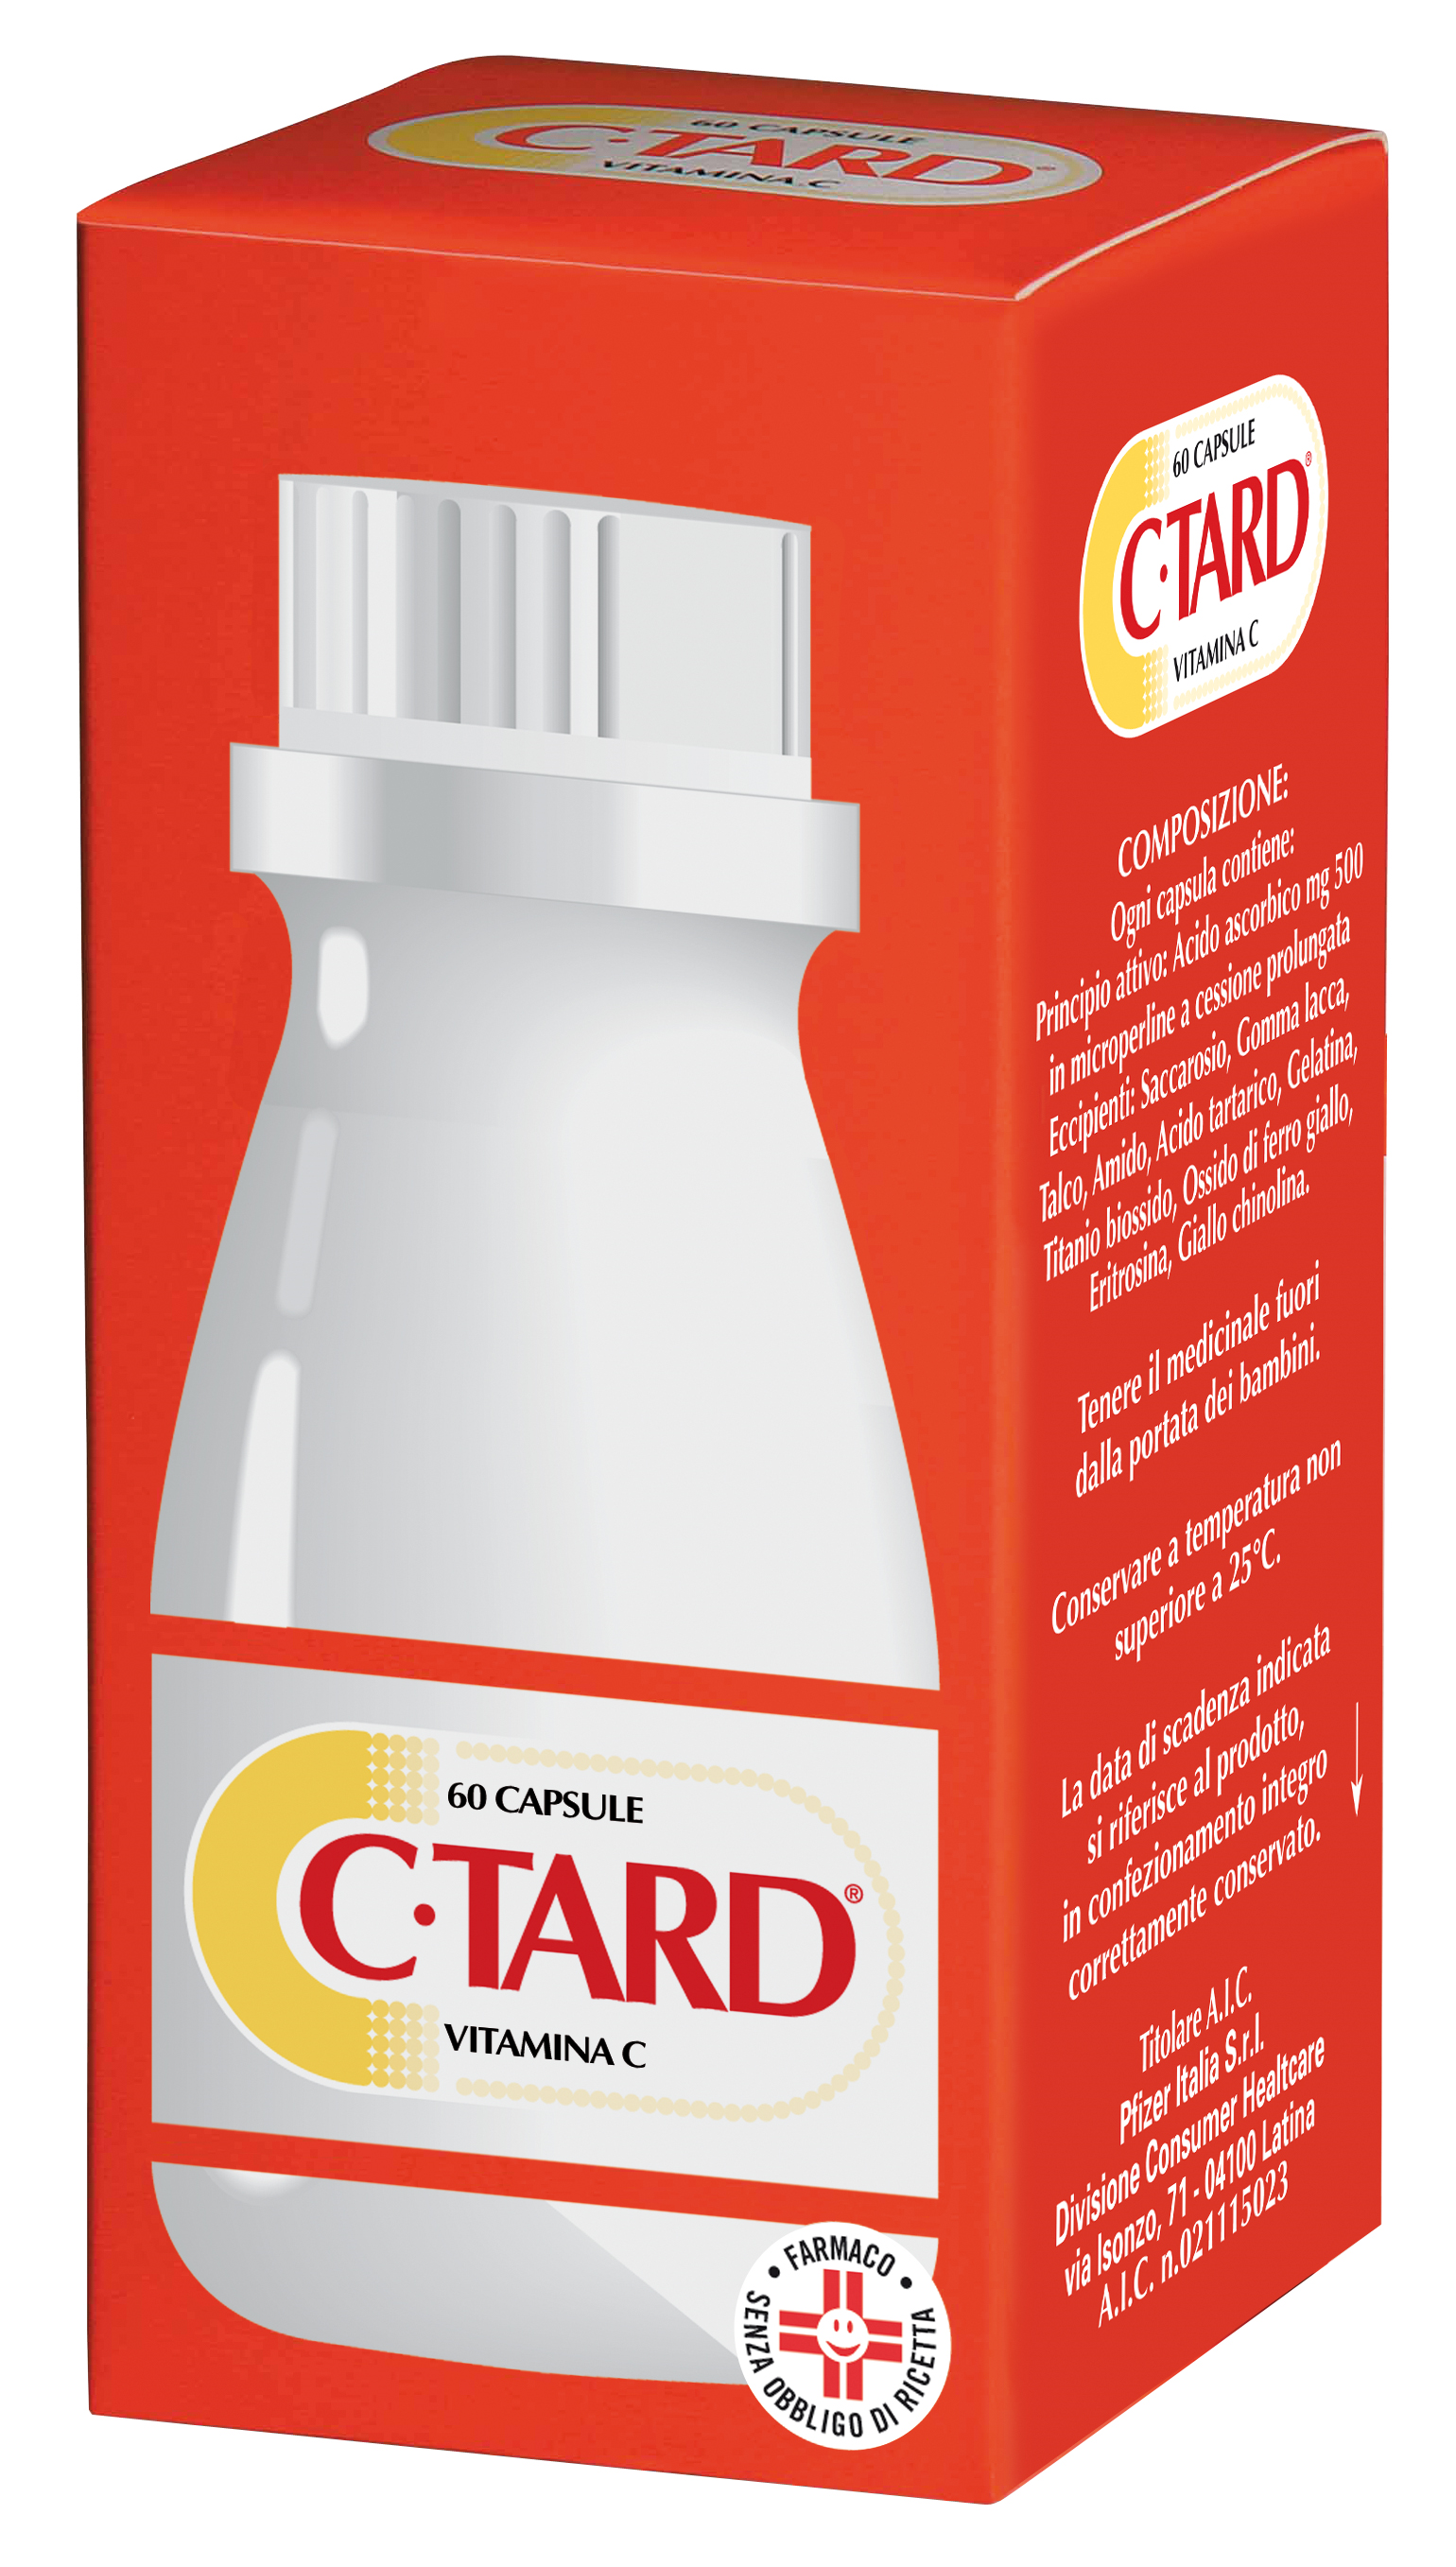 CTARD*60CPS 500MG RP FL - farmaciadeglispeziali.it